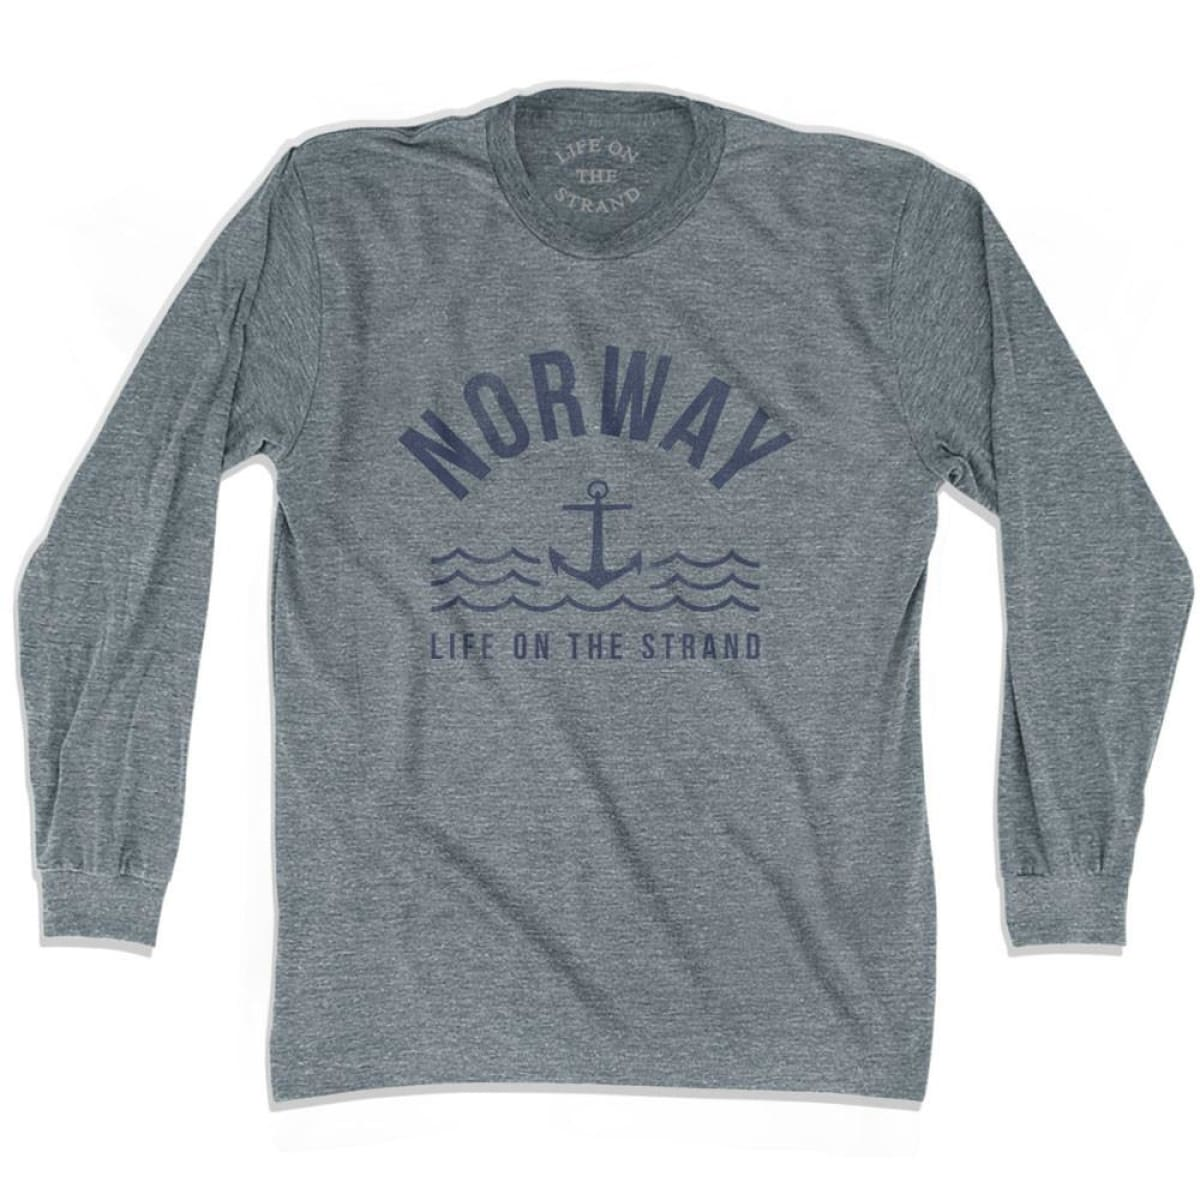 Norway Anchor Life on the Strand Long Sleeve T-shirt - Athletic Grey / Adult X-Small - Life on the Strand Anchor